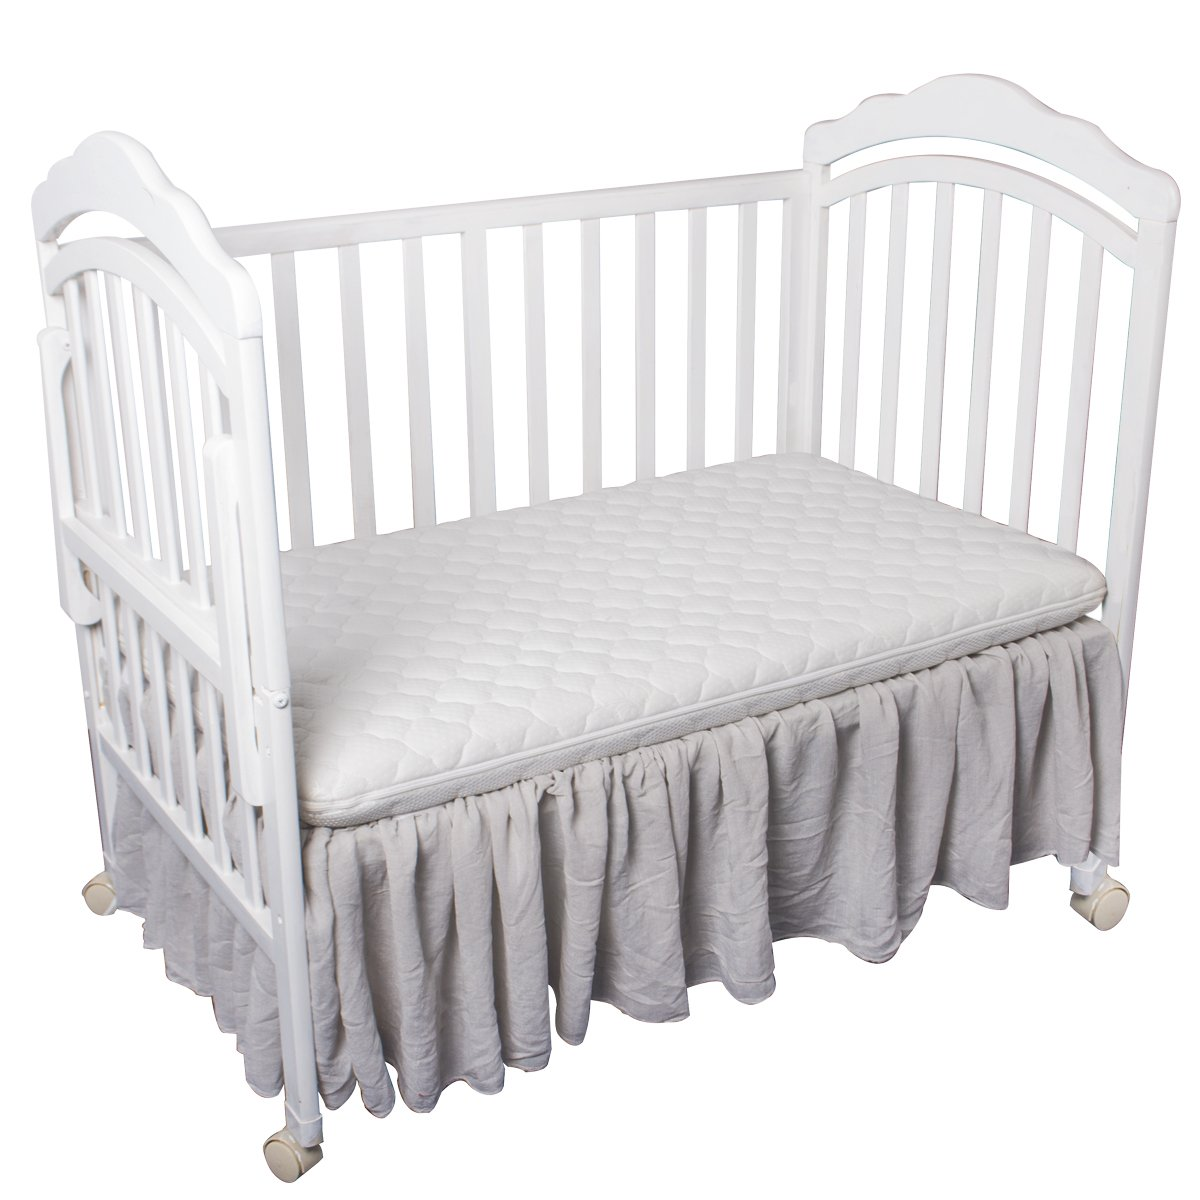 Grey Baby Muslin Crib Skirt CO-AVE Dust Ruffle Crib Bed Skirt Cotton for Baby Boys and Baby Girls